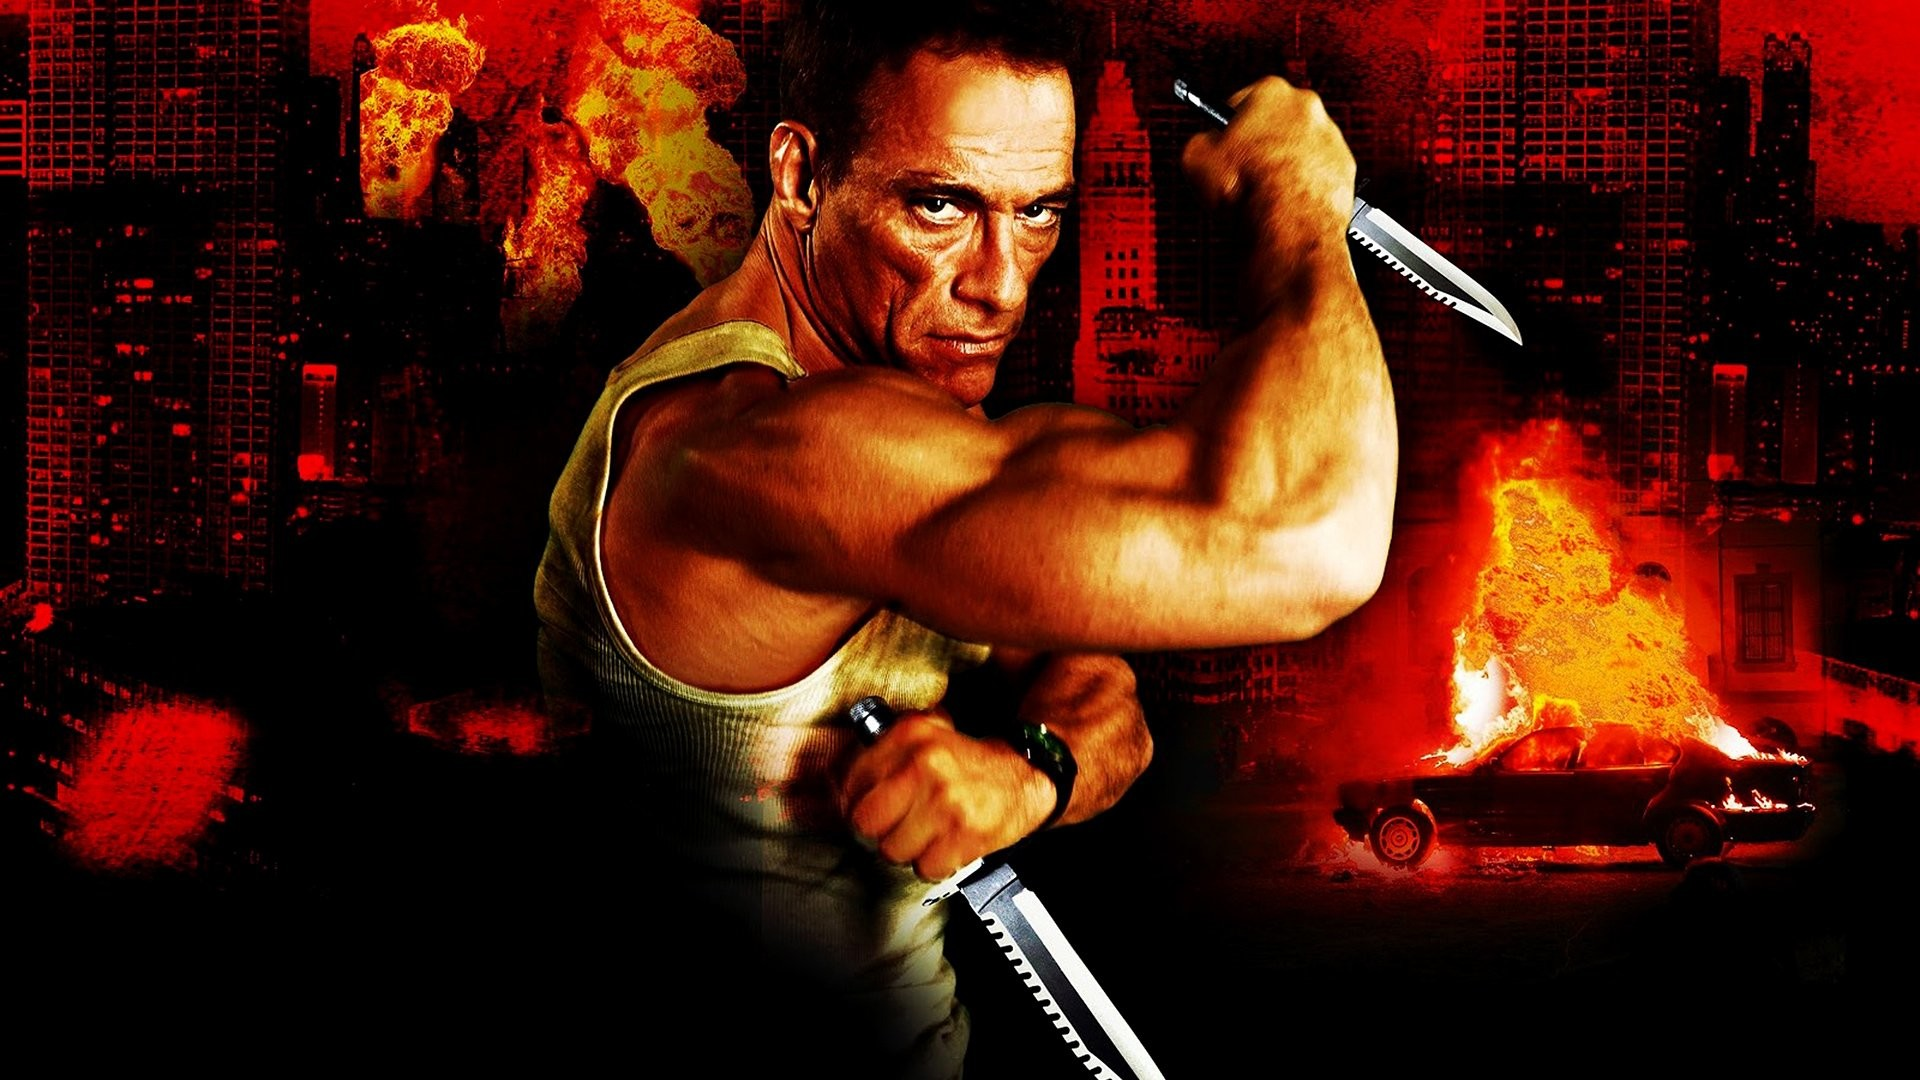 Jean Claude Van Damme Wallpapers Wallpapertag